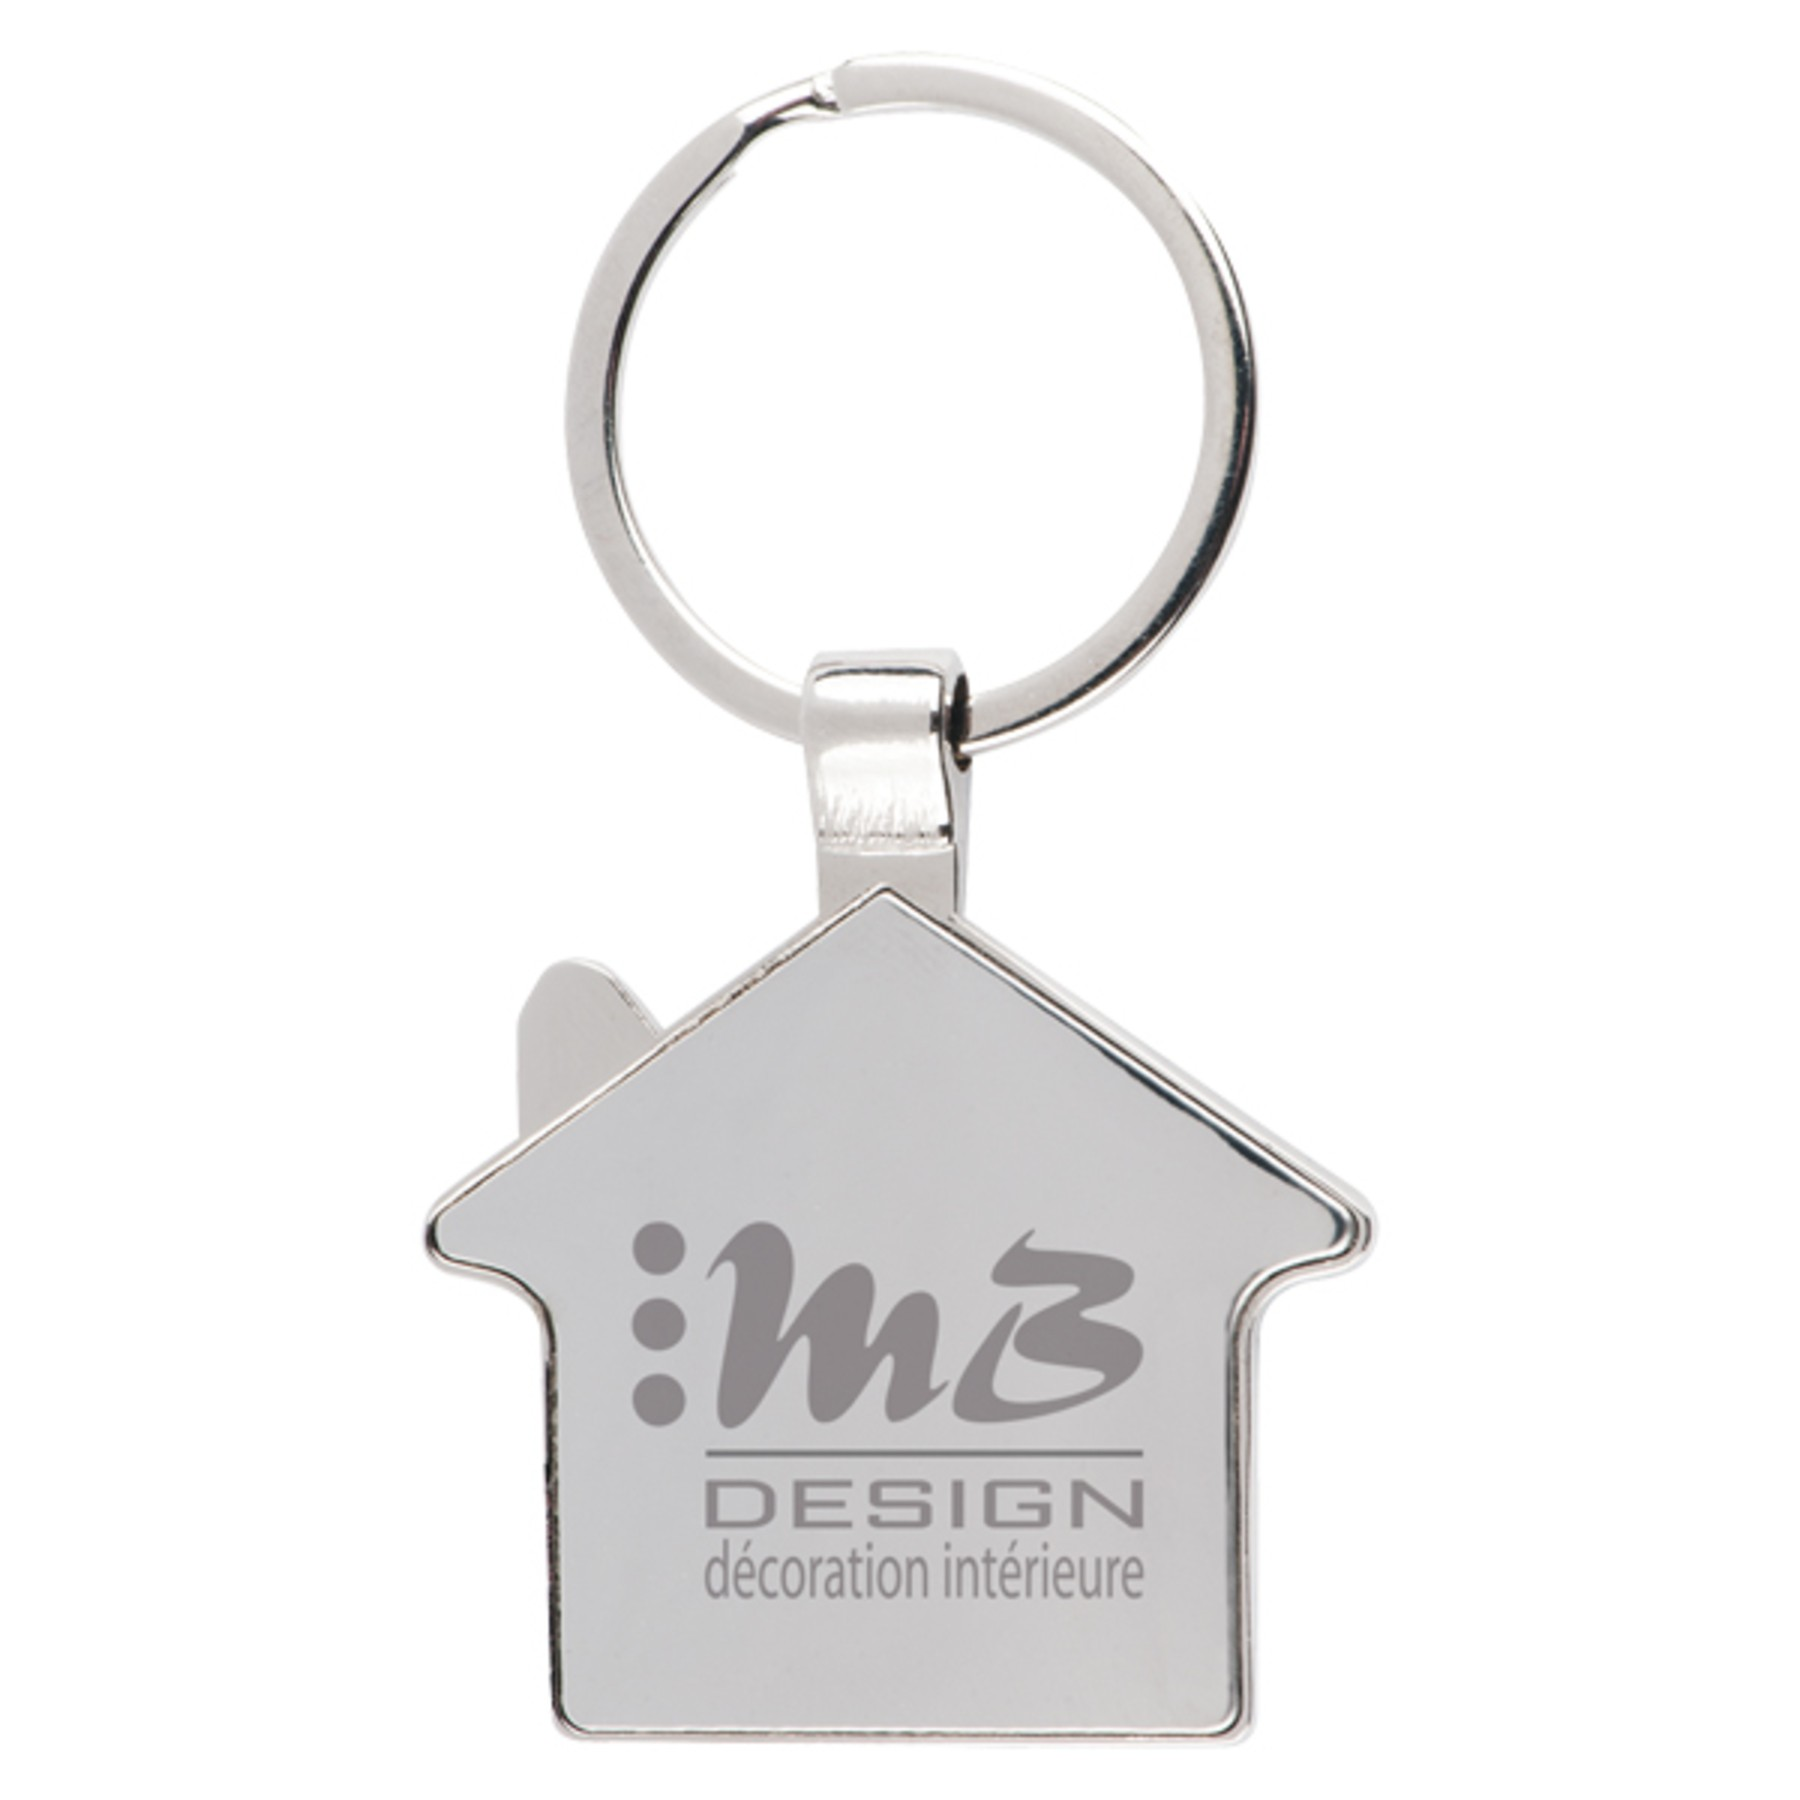 House shape key holder made of zinc alloy & stainless steel for on web design, pie graph design, spot color design, company branding design, openoffice design, dvb design, interactive experience design, theming design, civil 3d design, mets design, datatable design, datagrid design, upload design, interactive website design, page banner design, simple text design, blockquote design, ms word design, cvs design, potoshop design,